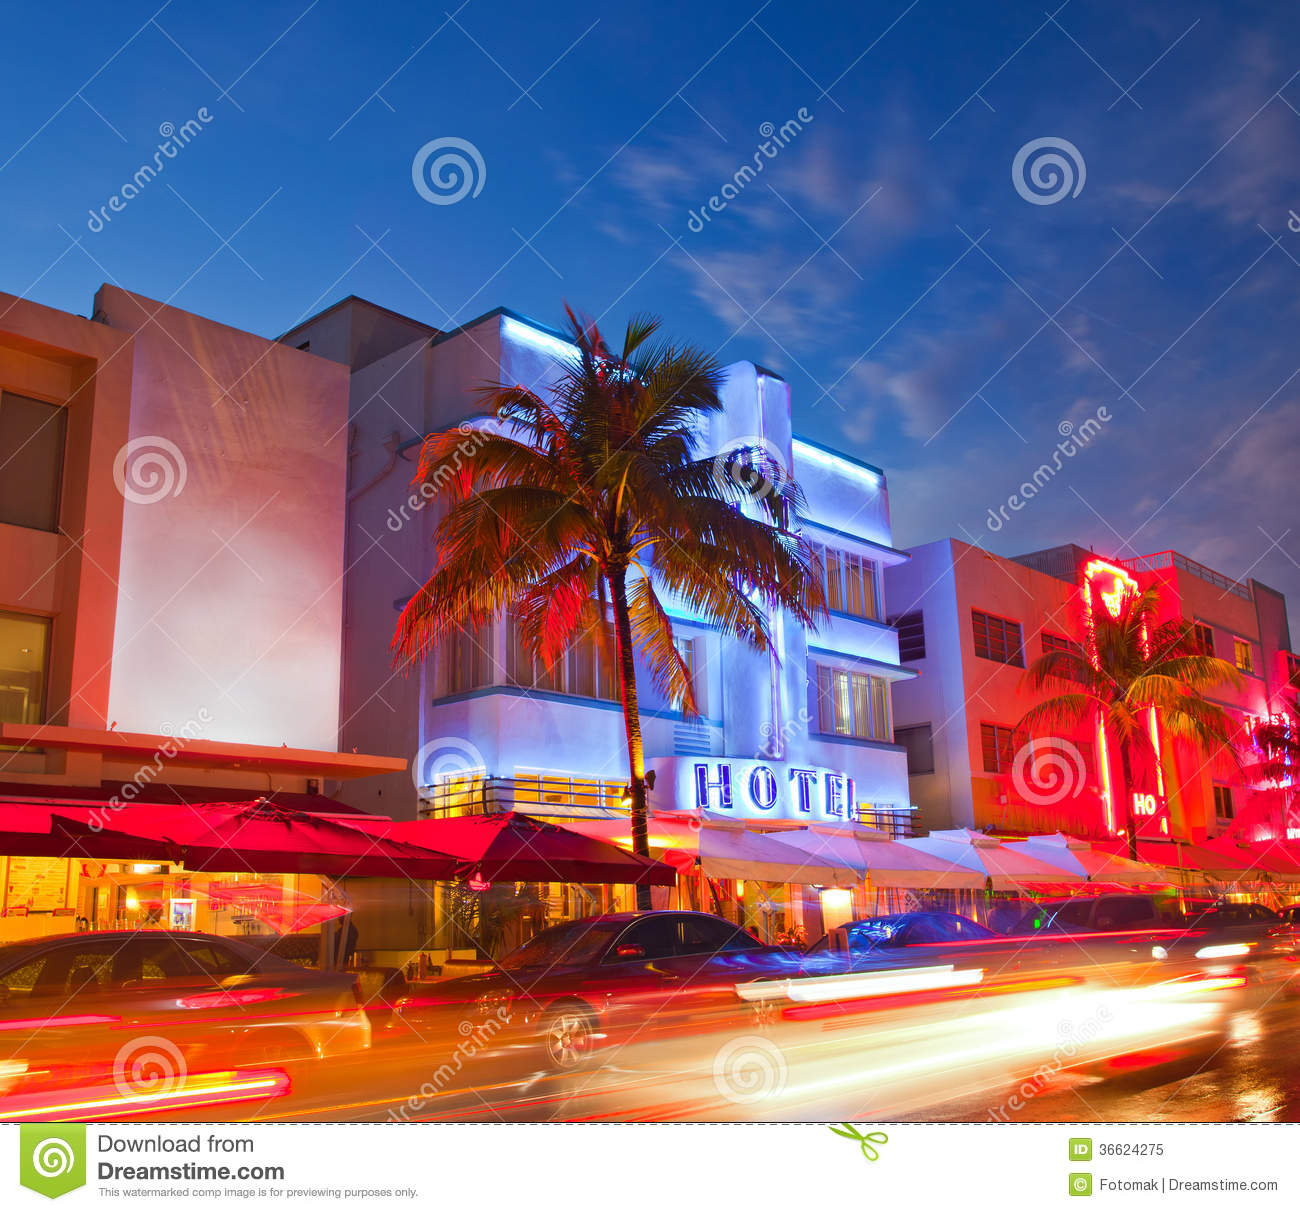 Miami Florida Nightlife: Miami Beach, Florida Hotels And Restaurants At Sunse